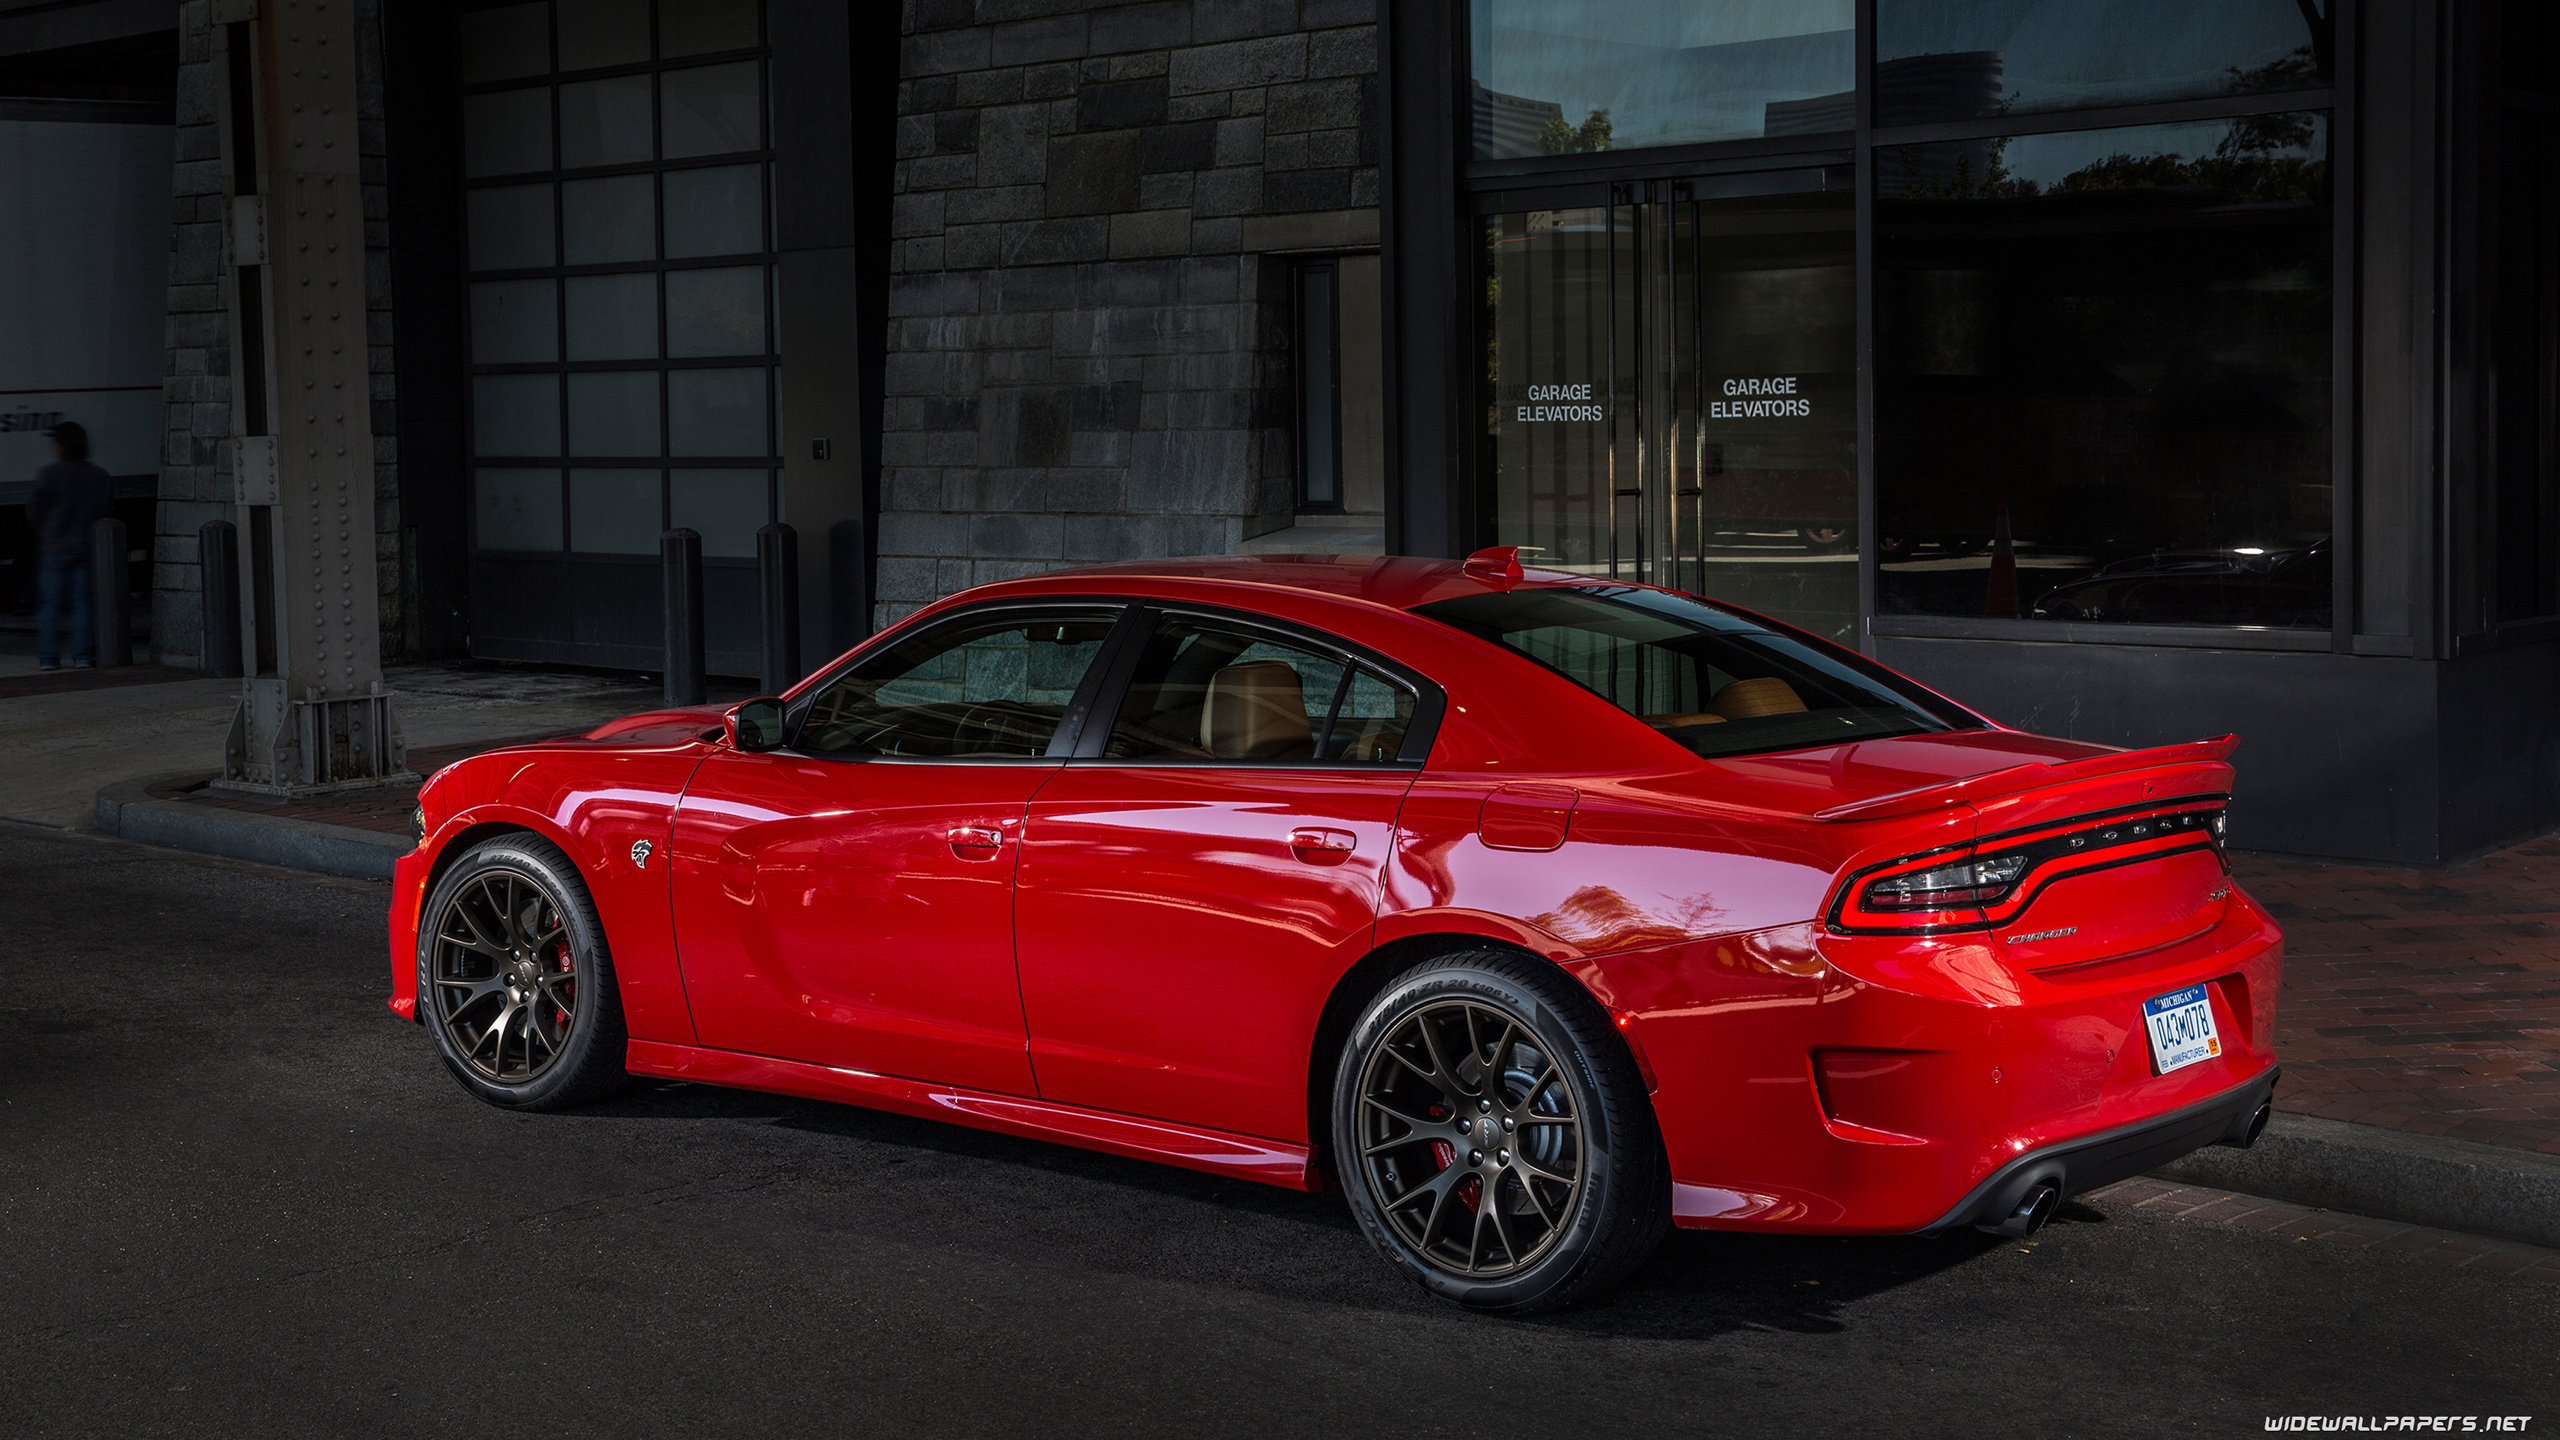 Awd Dodge Charger >> Dodge Charger cars desktop wallpapers 4K Ultra HD - Page 4